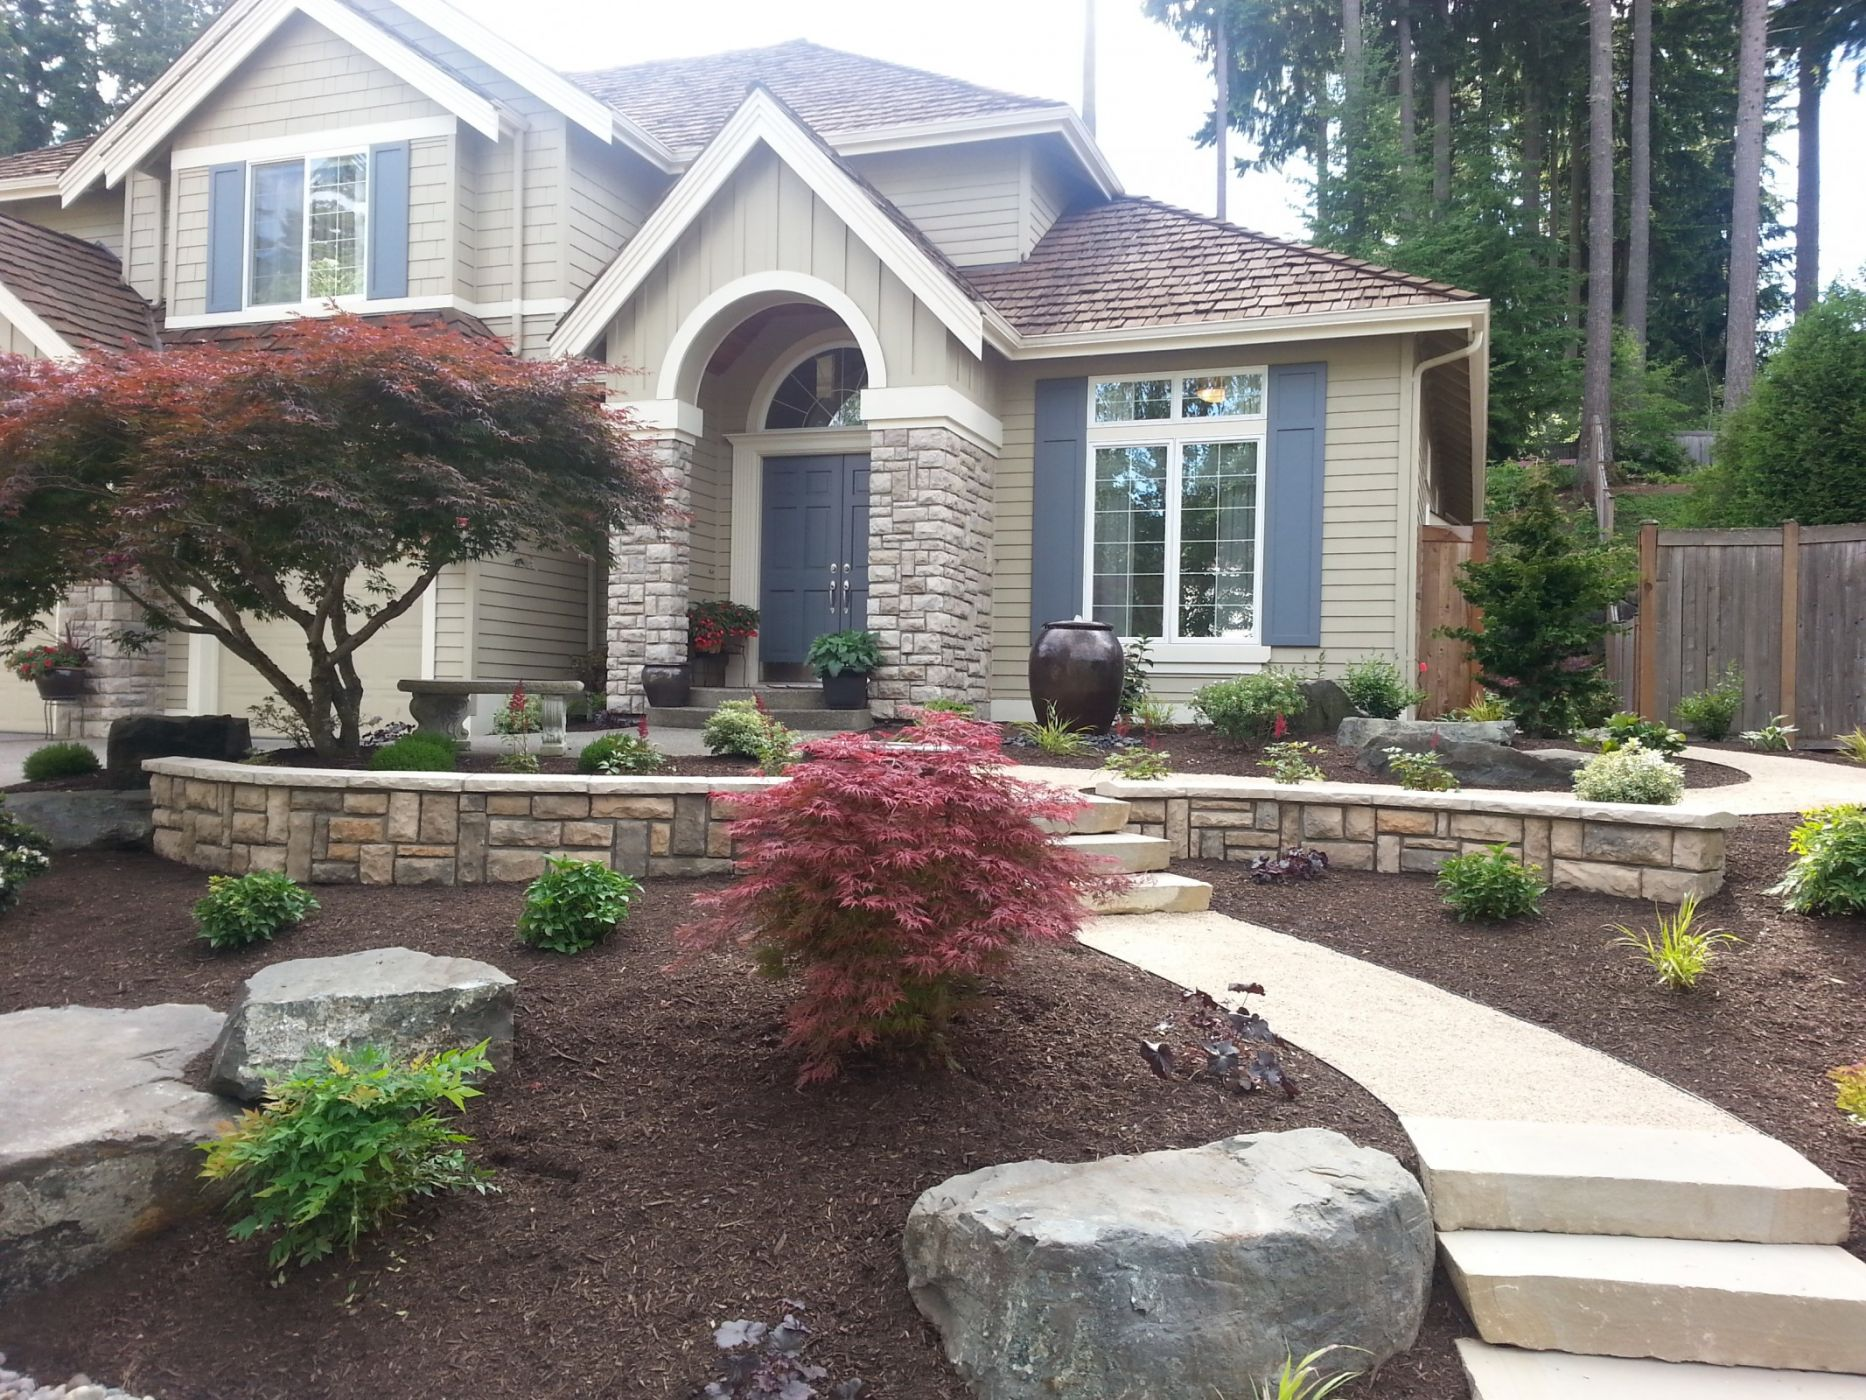 Janika landscaping ideas front yard illinois here for Home front garden design